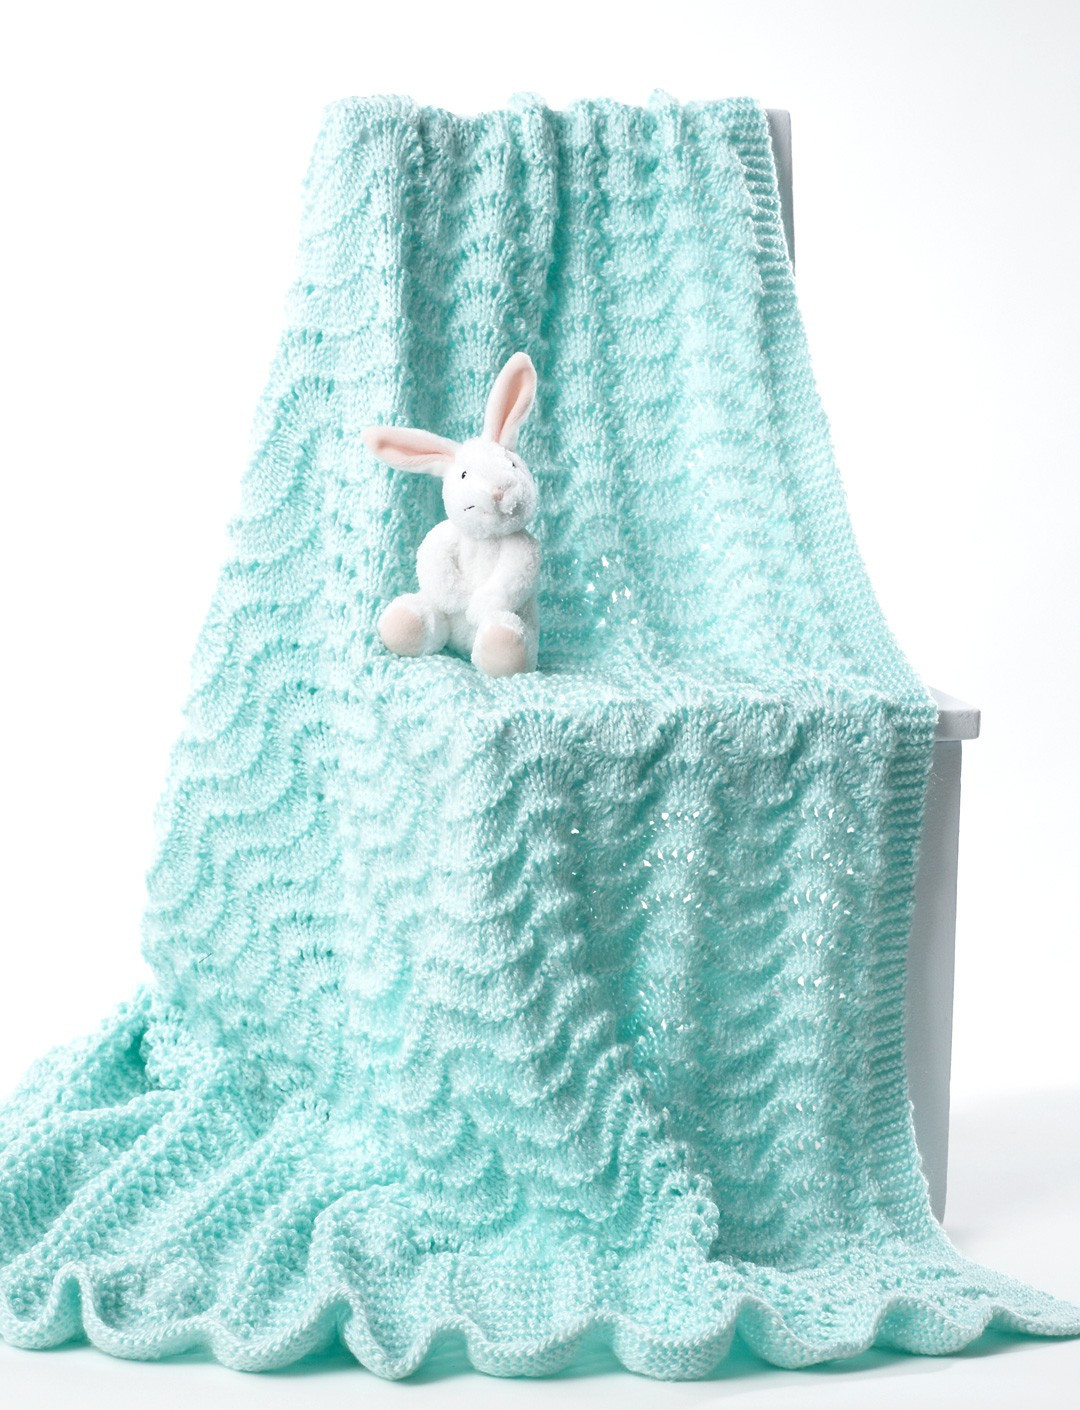 Easy Knit Baby Blanket Beautiful Easy Baby Blanket Knitting Patterns Of Fresh 48 Pics Easy Knit Baby Blanket